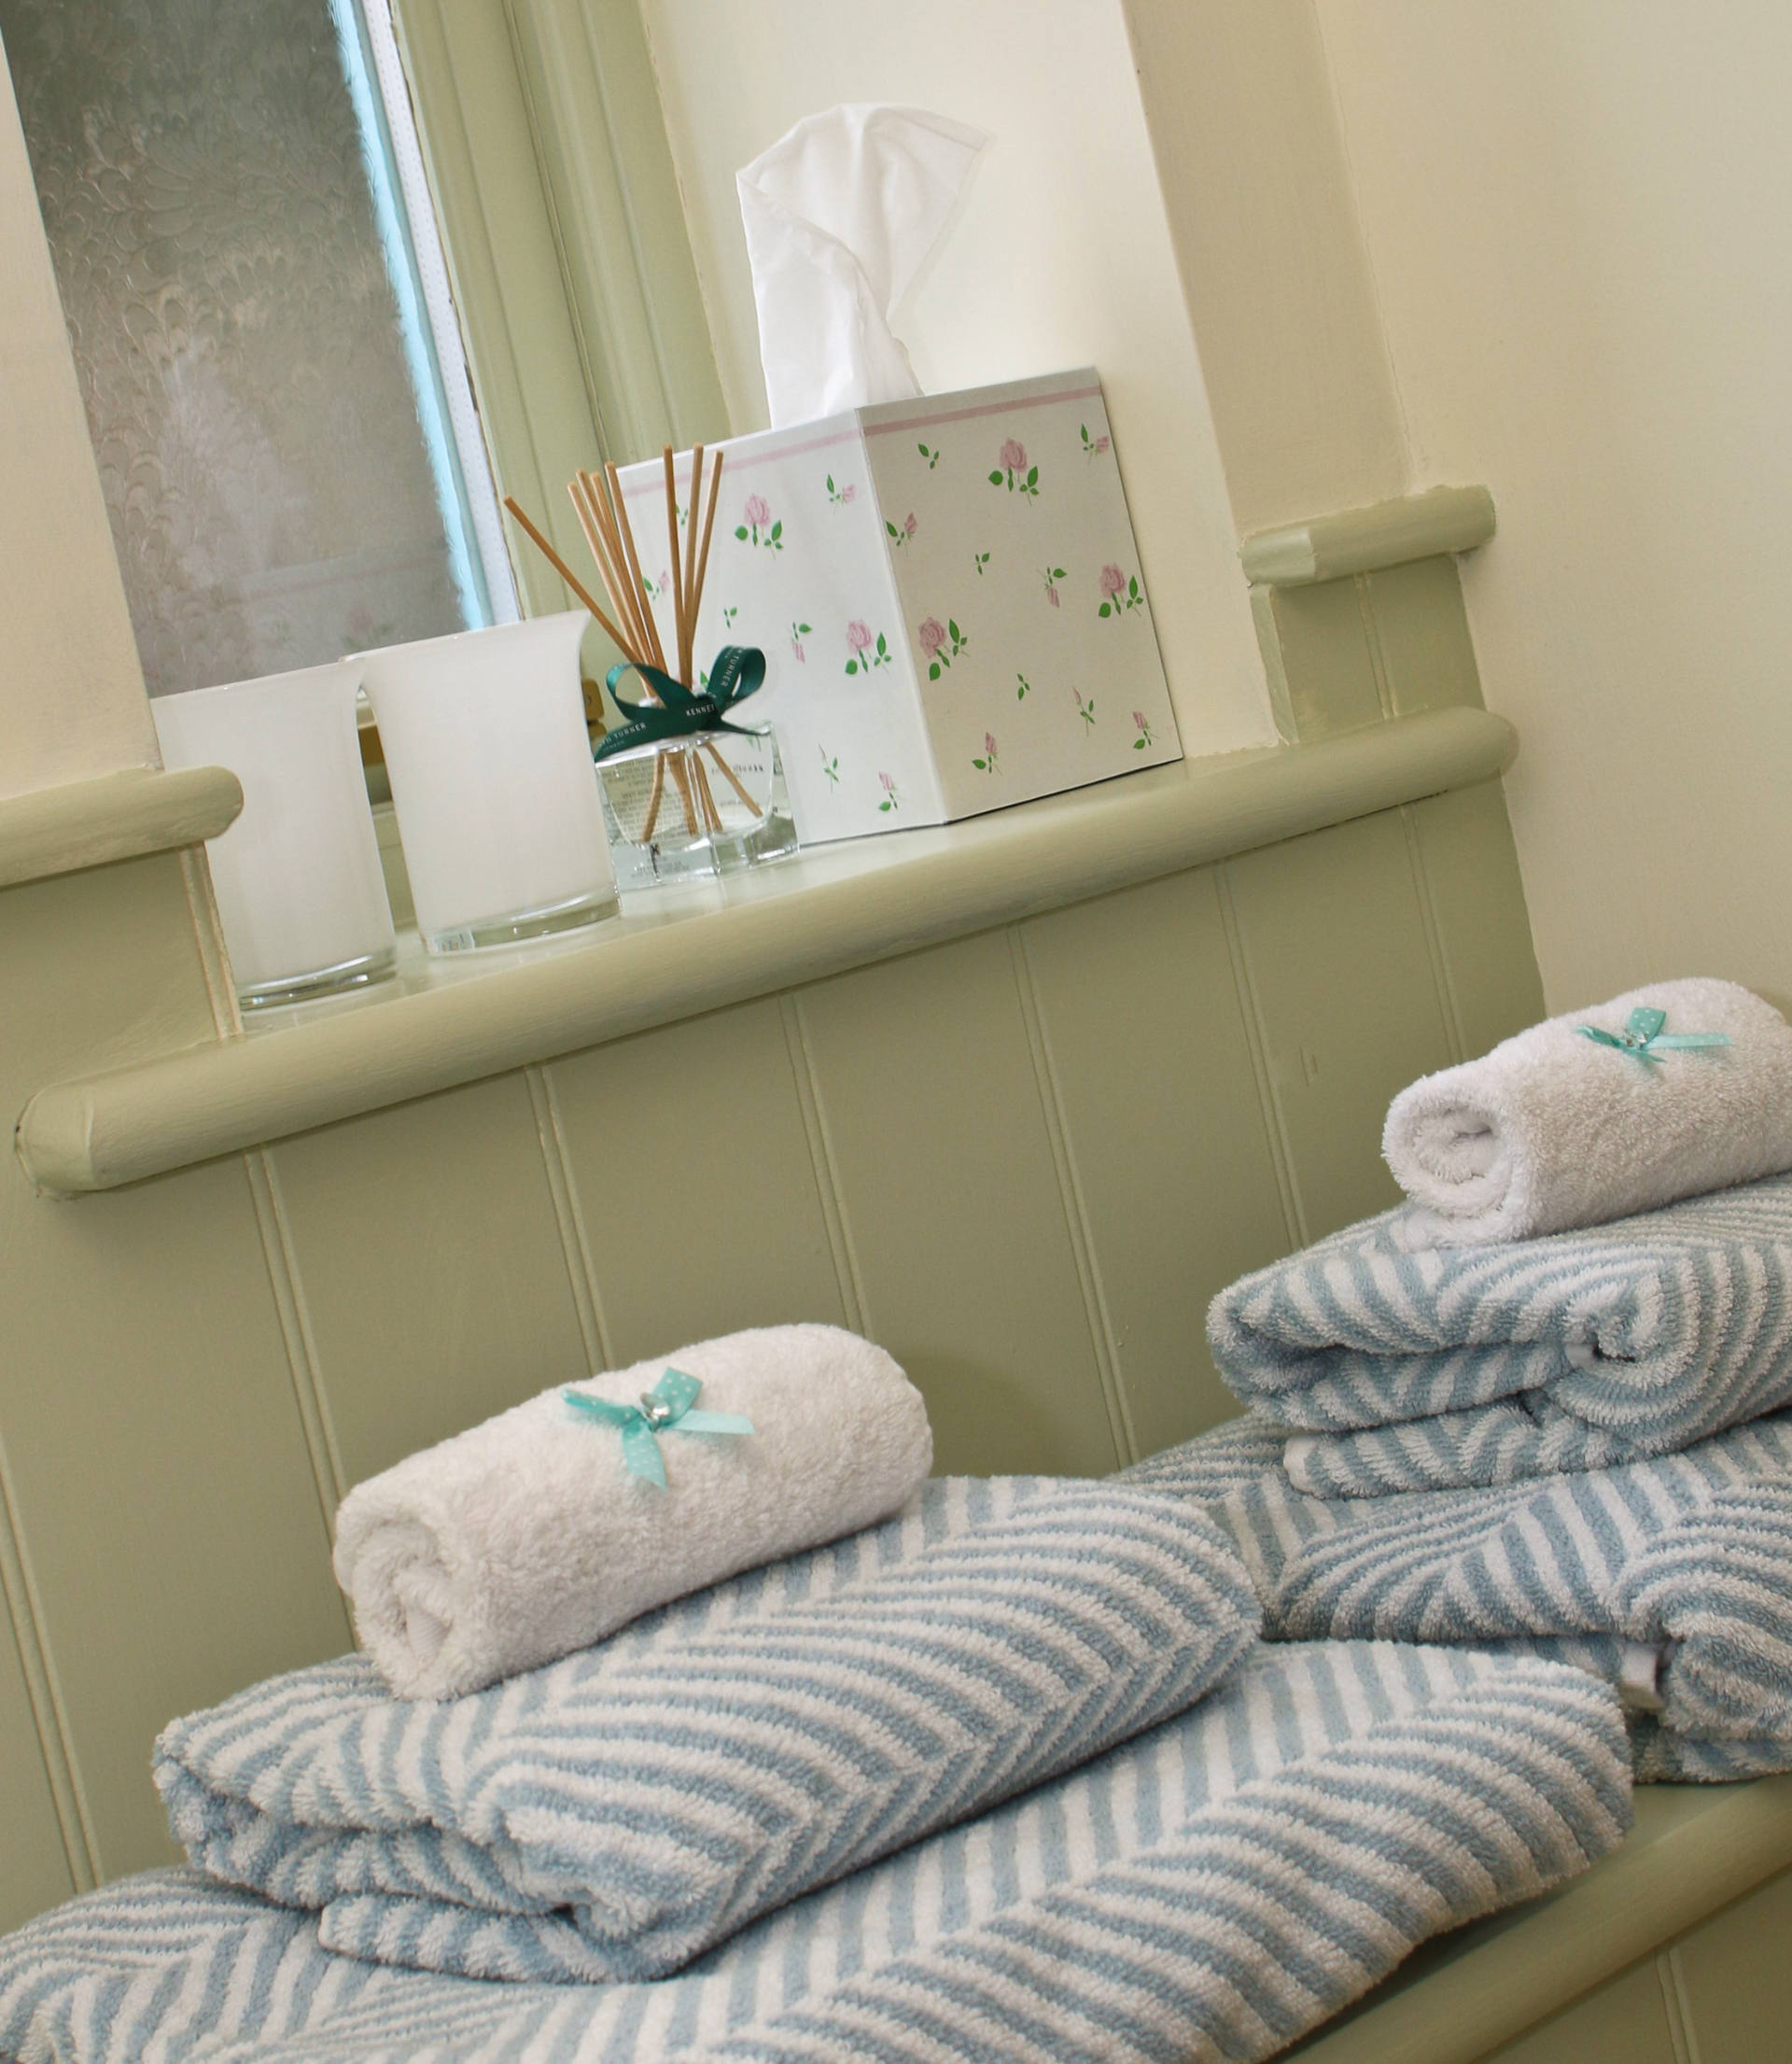 Bathroom towels for guests.